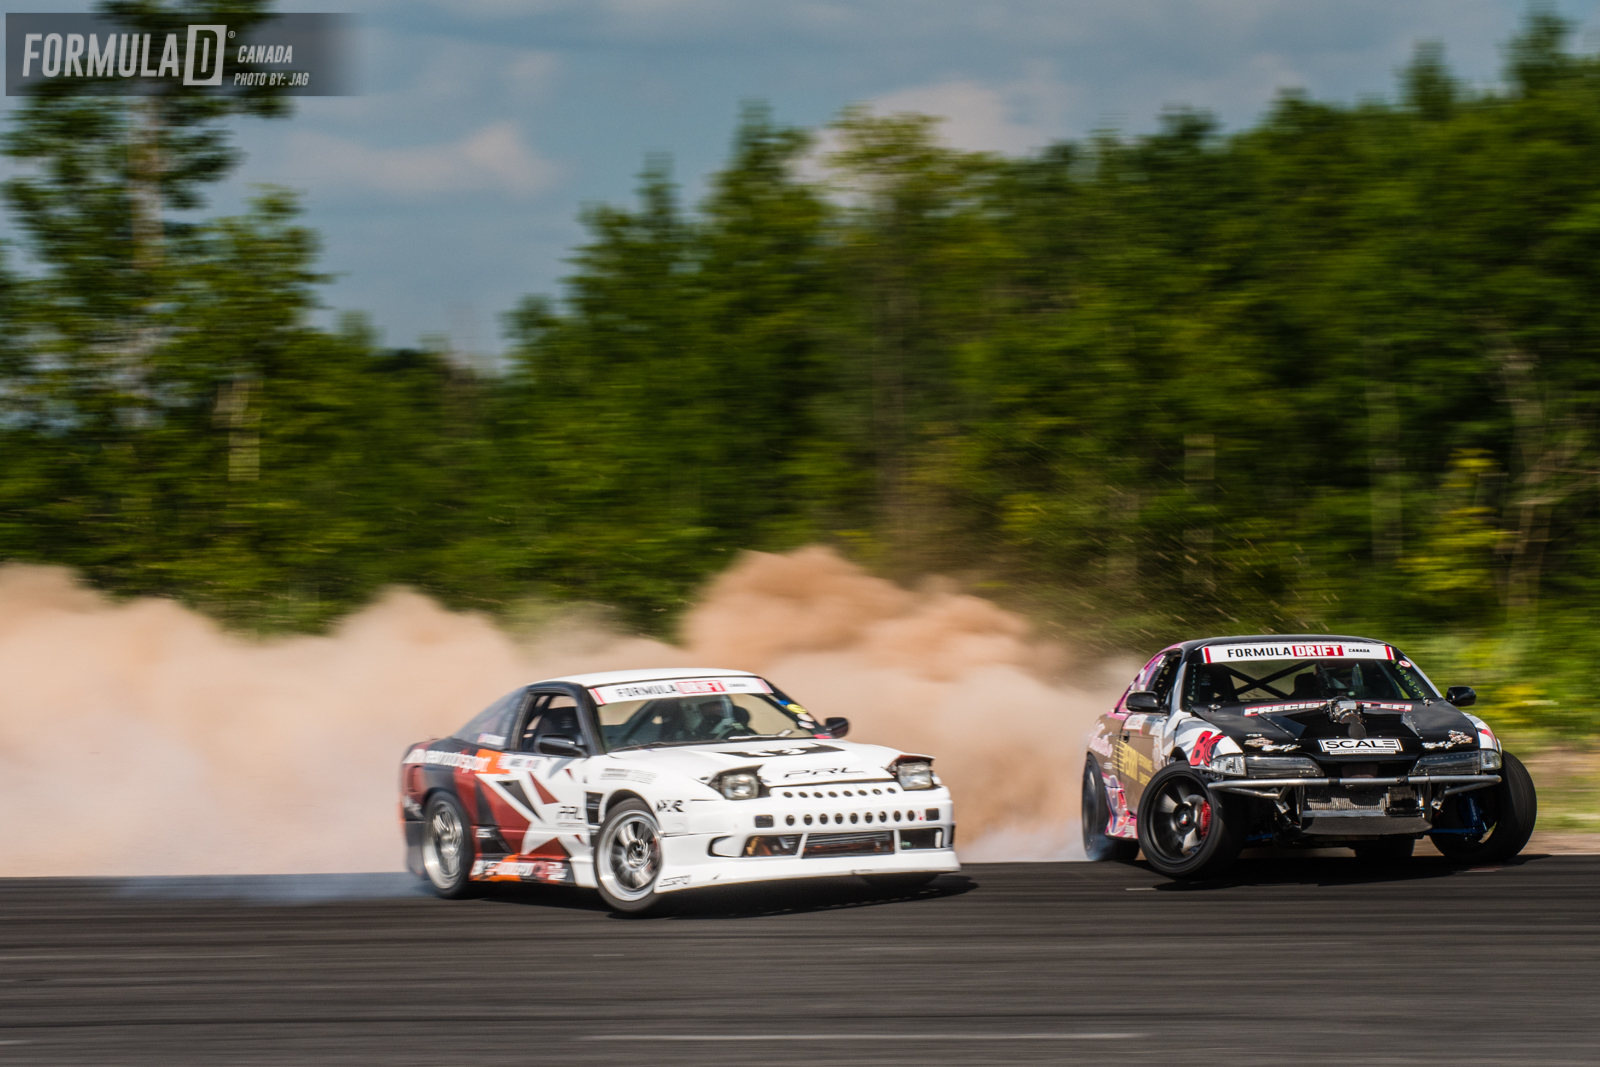 Crazy how drifting works some times, Last nights final pairing were now facing each other in Top 16.